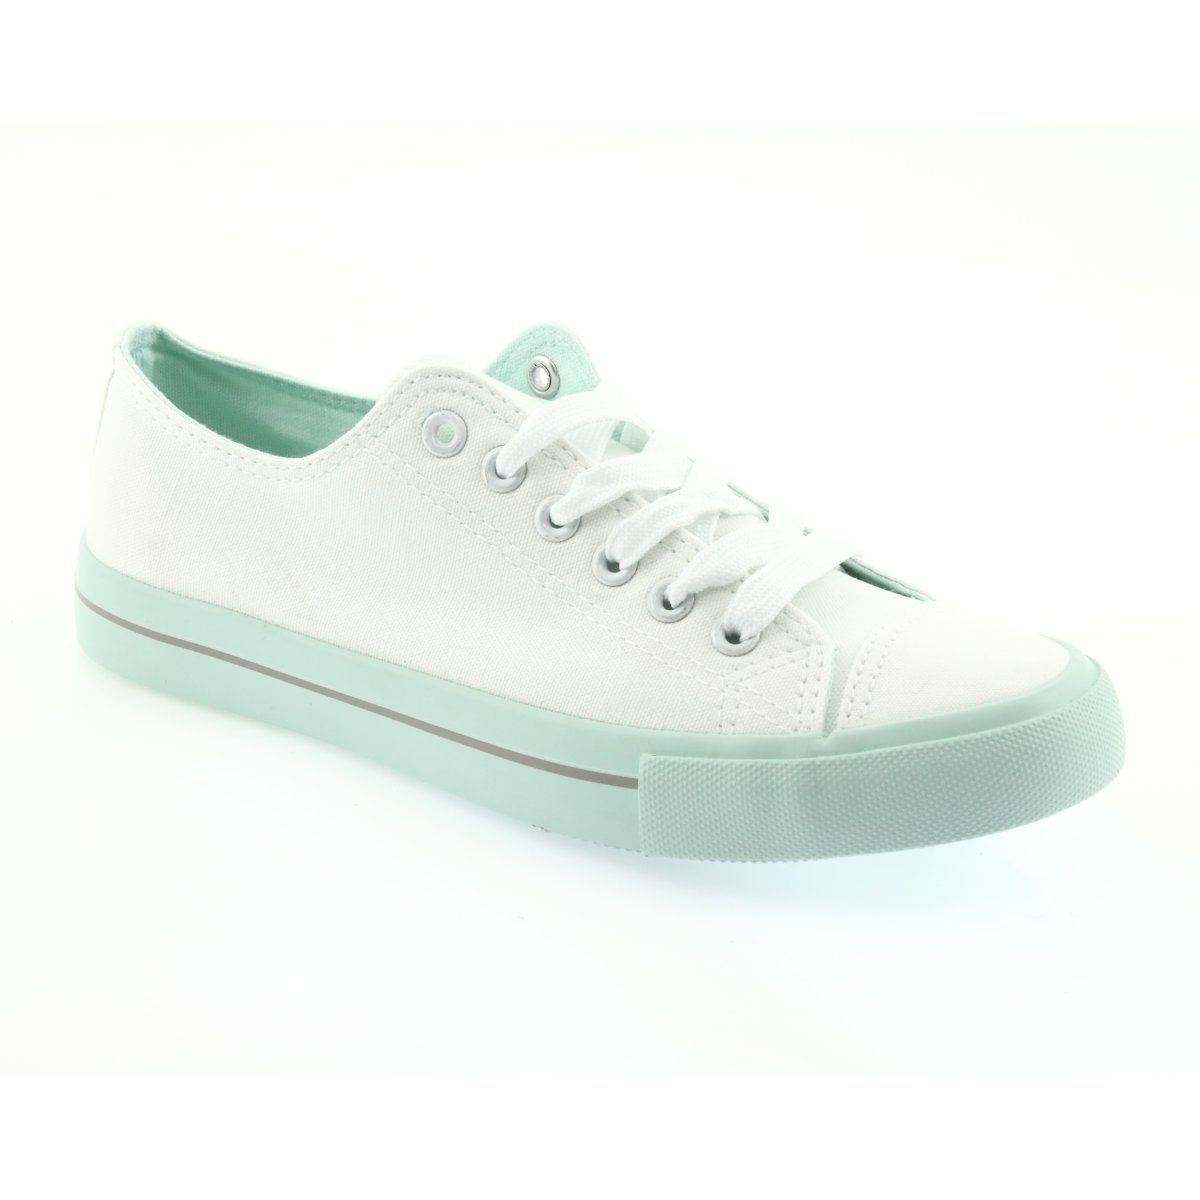 Atletico Sneakers White Green Sneakers Trainers Women Womens Sneakers